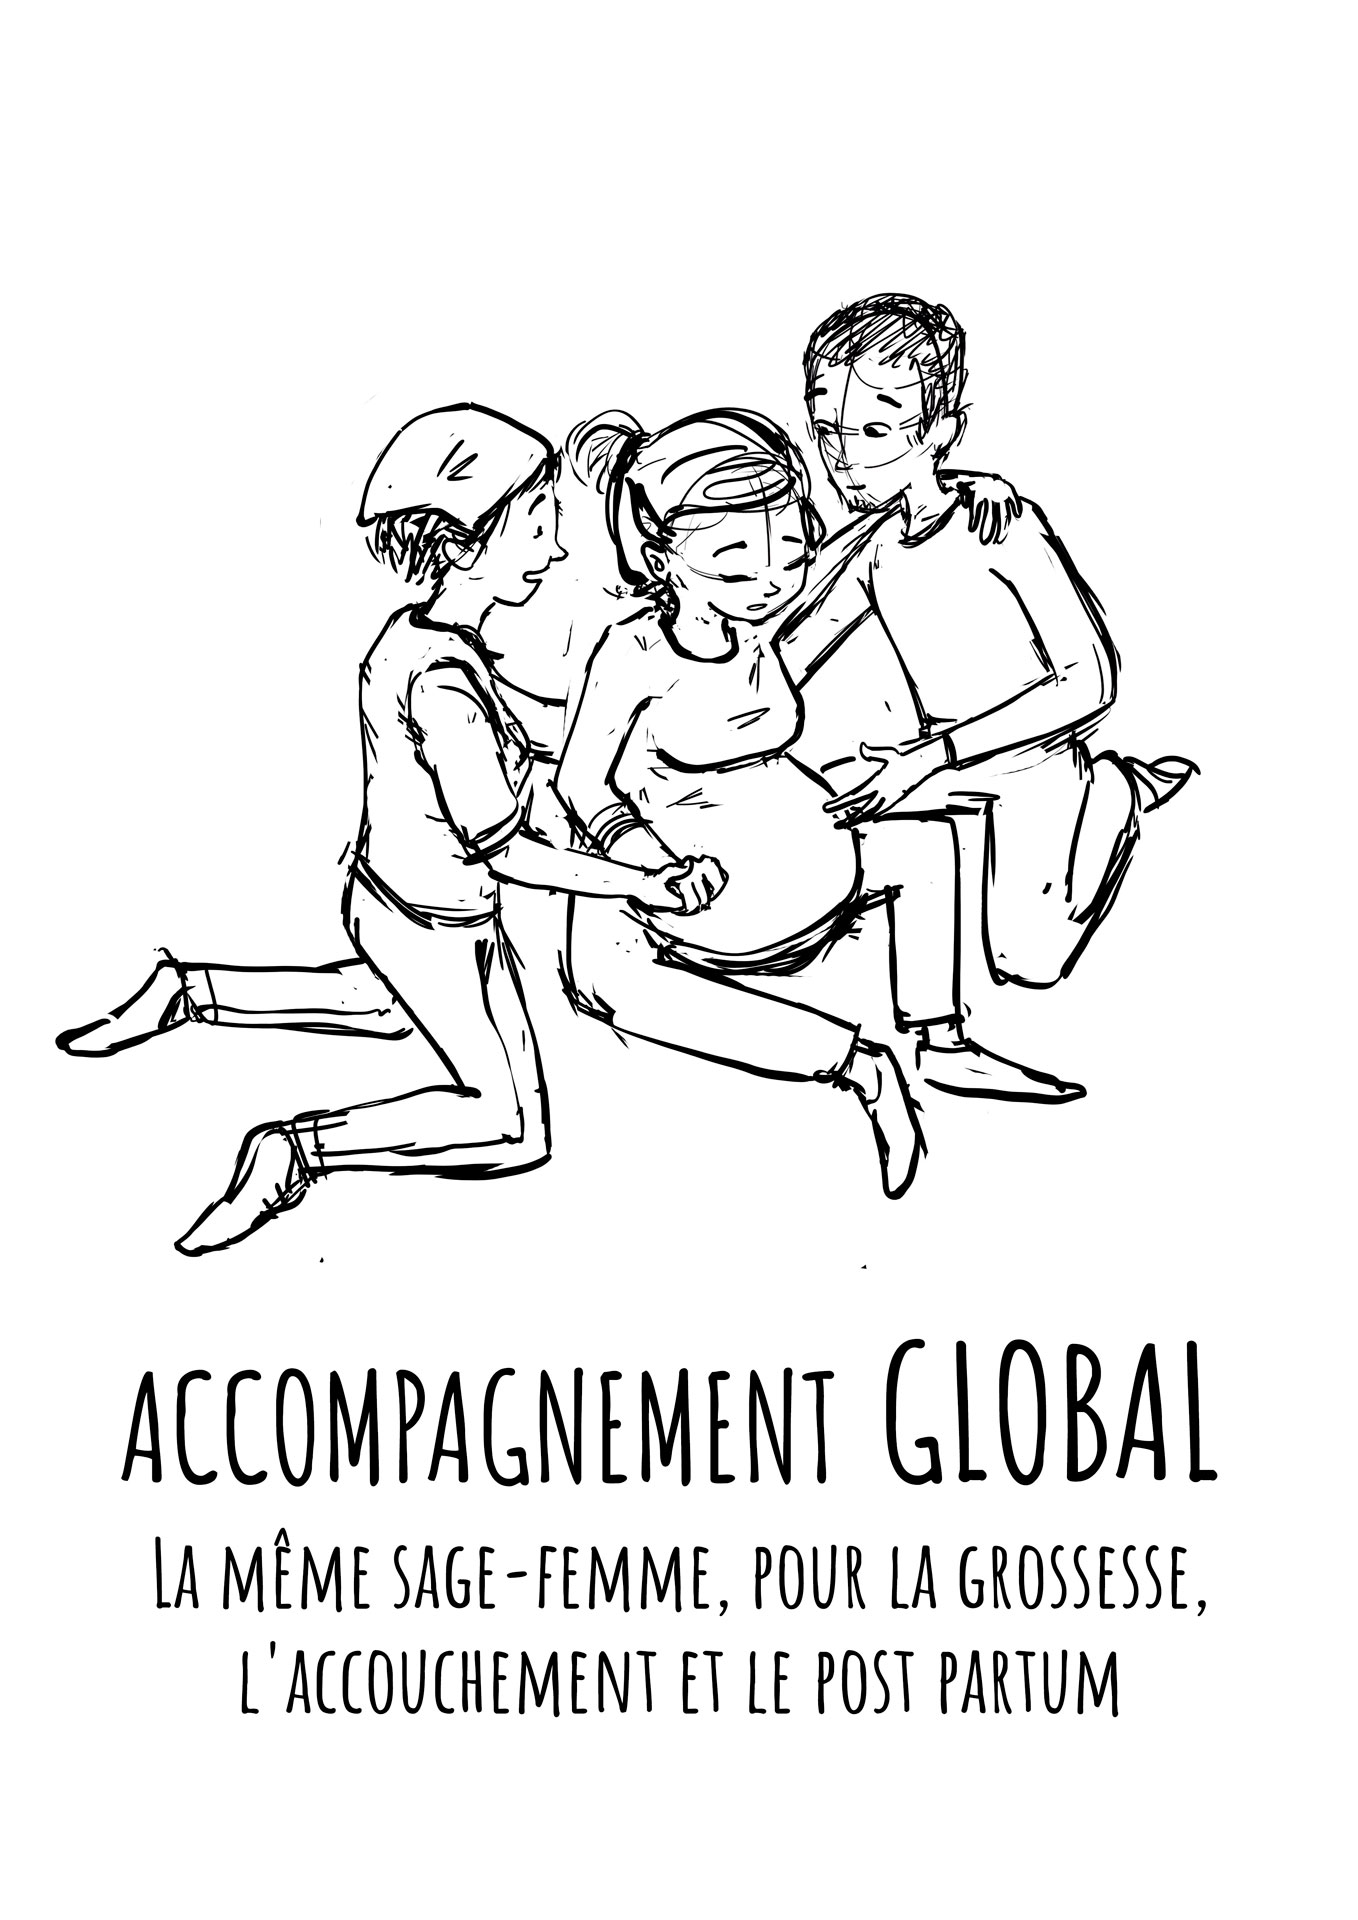 Accompagnement Global